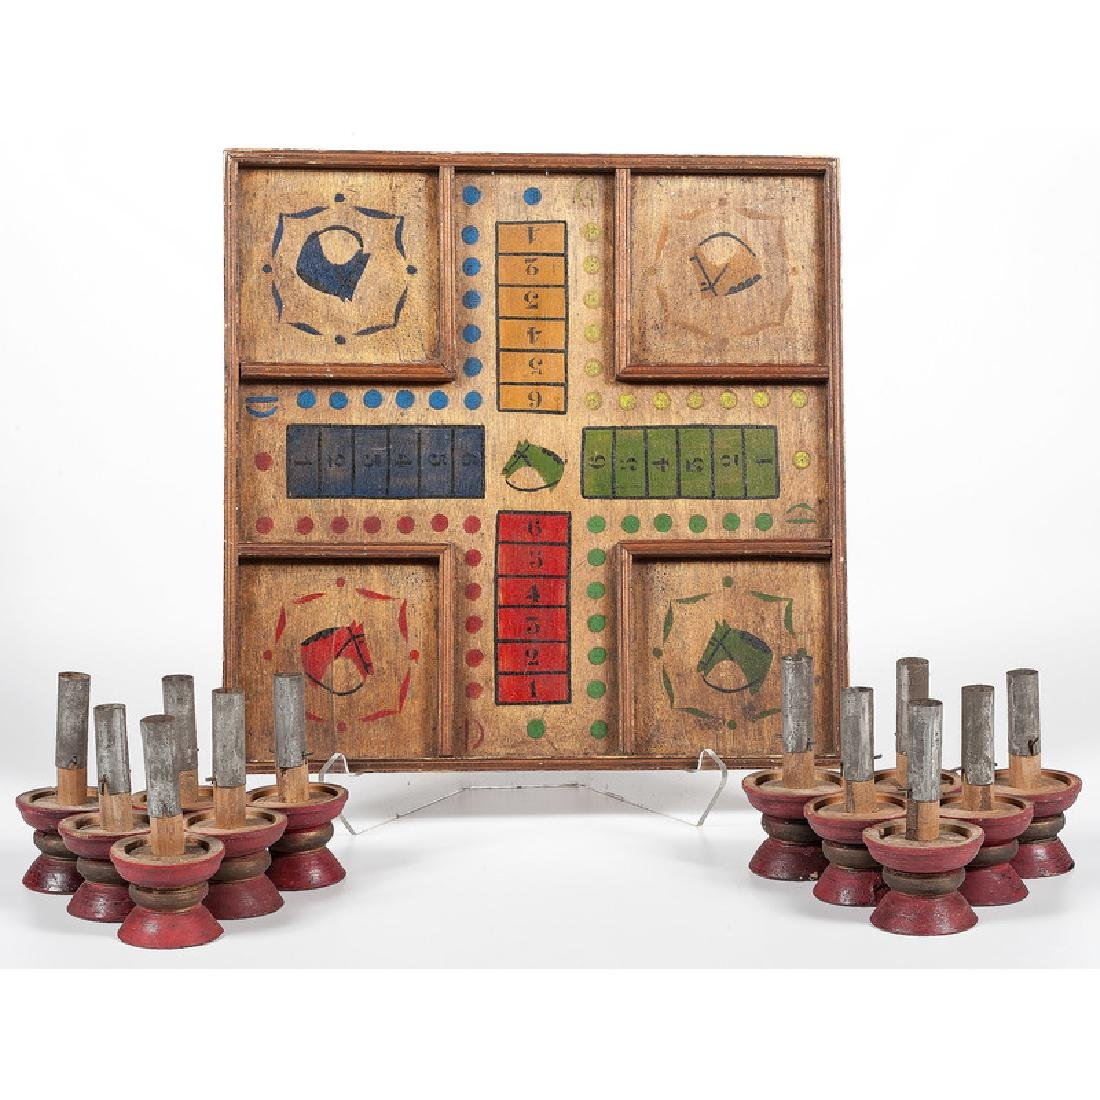 Horse Race Board Game and Painted Carnival Pegs